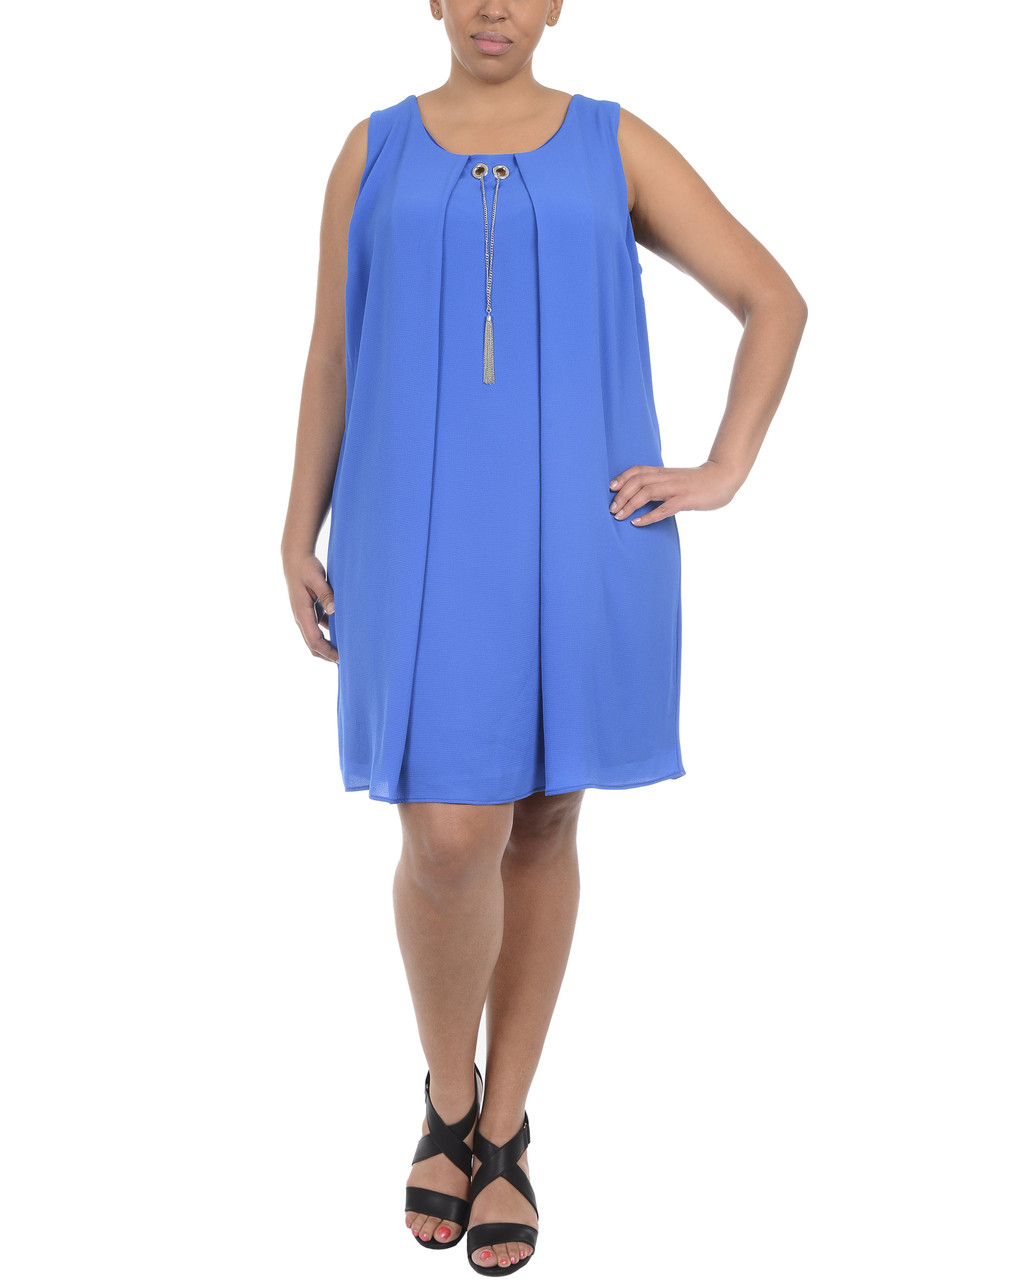 Plus Size Sleeveless Open Back Dress with Necklace~Nautical Blue ...